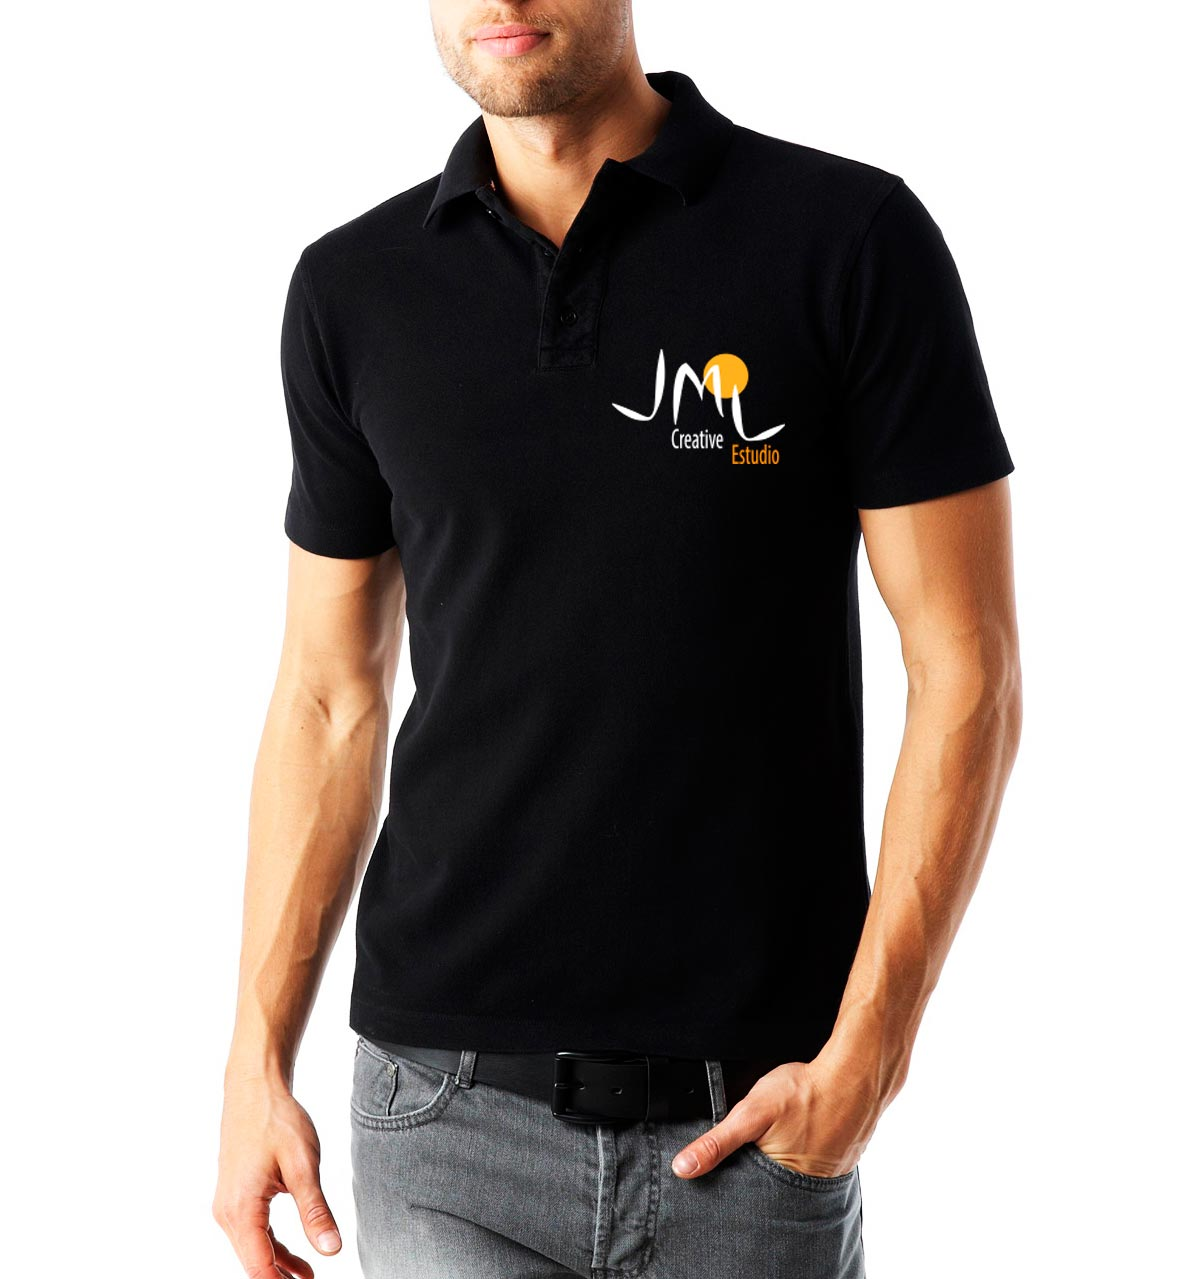 Identidad Corporativa JML Creative Estudio-Ropa Corporativa